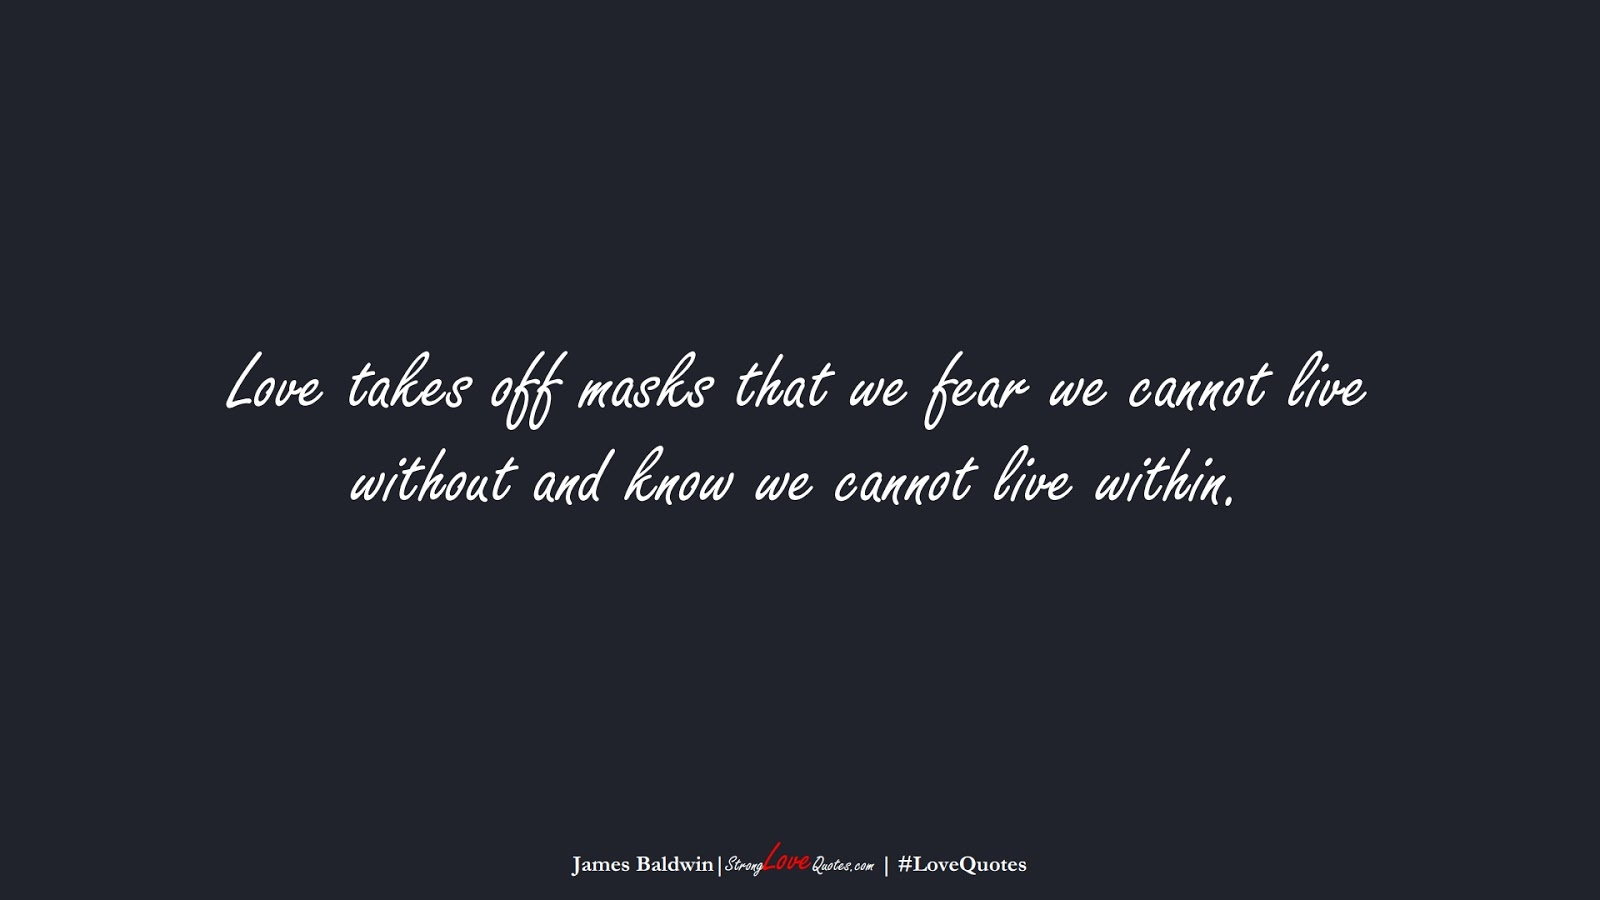 Love takes off masks that we fear we cannot live without and know we cannot live within. (James Baldwin);  #LoveQuotes